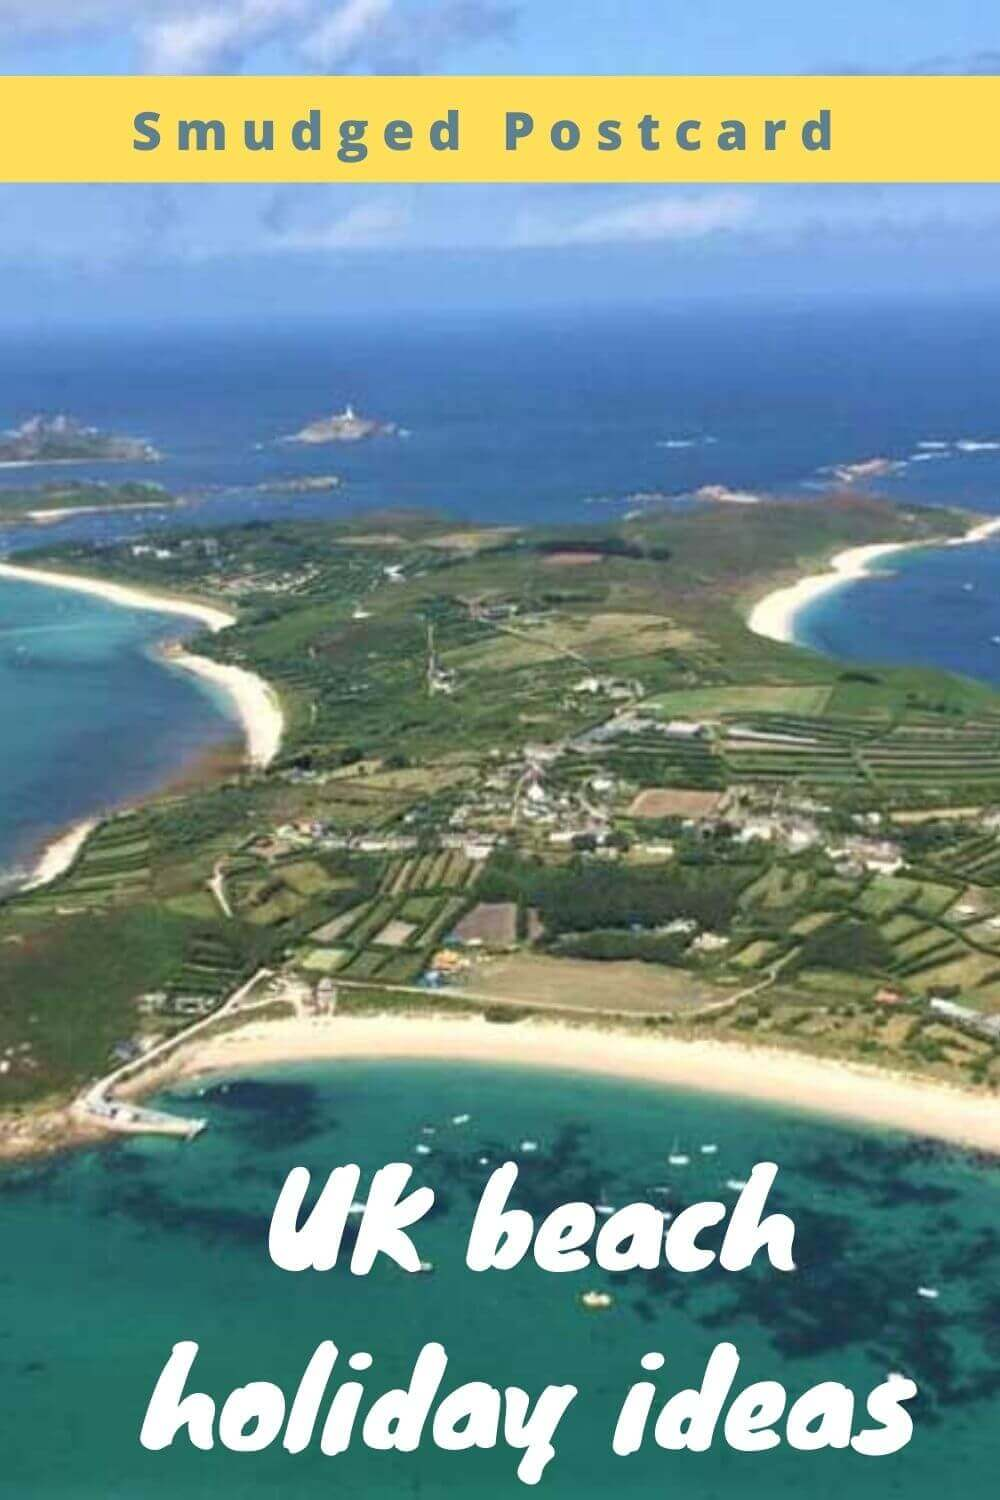 UK beach holiday ideas for families